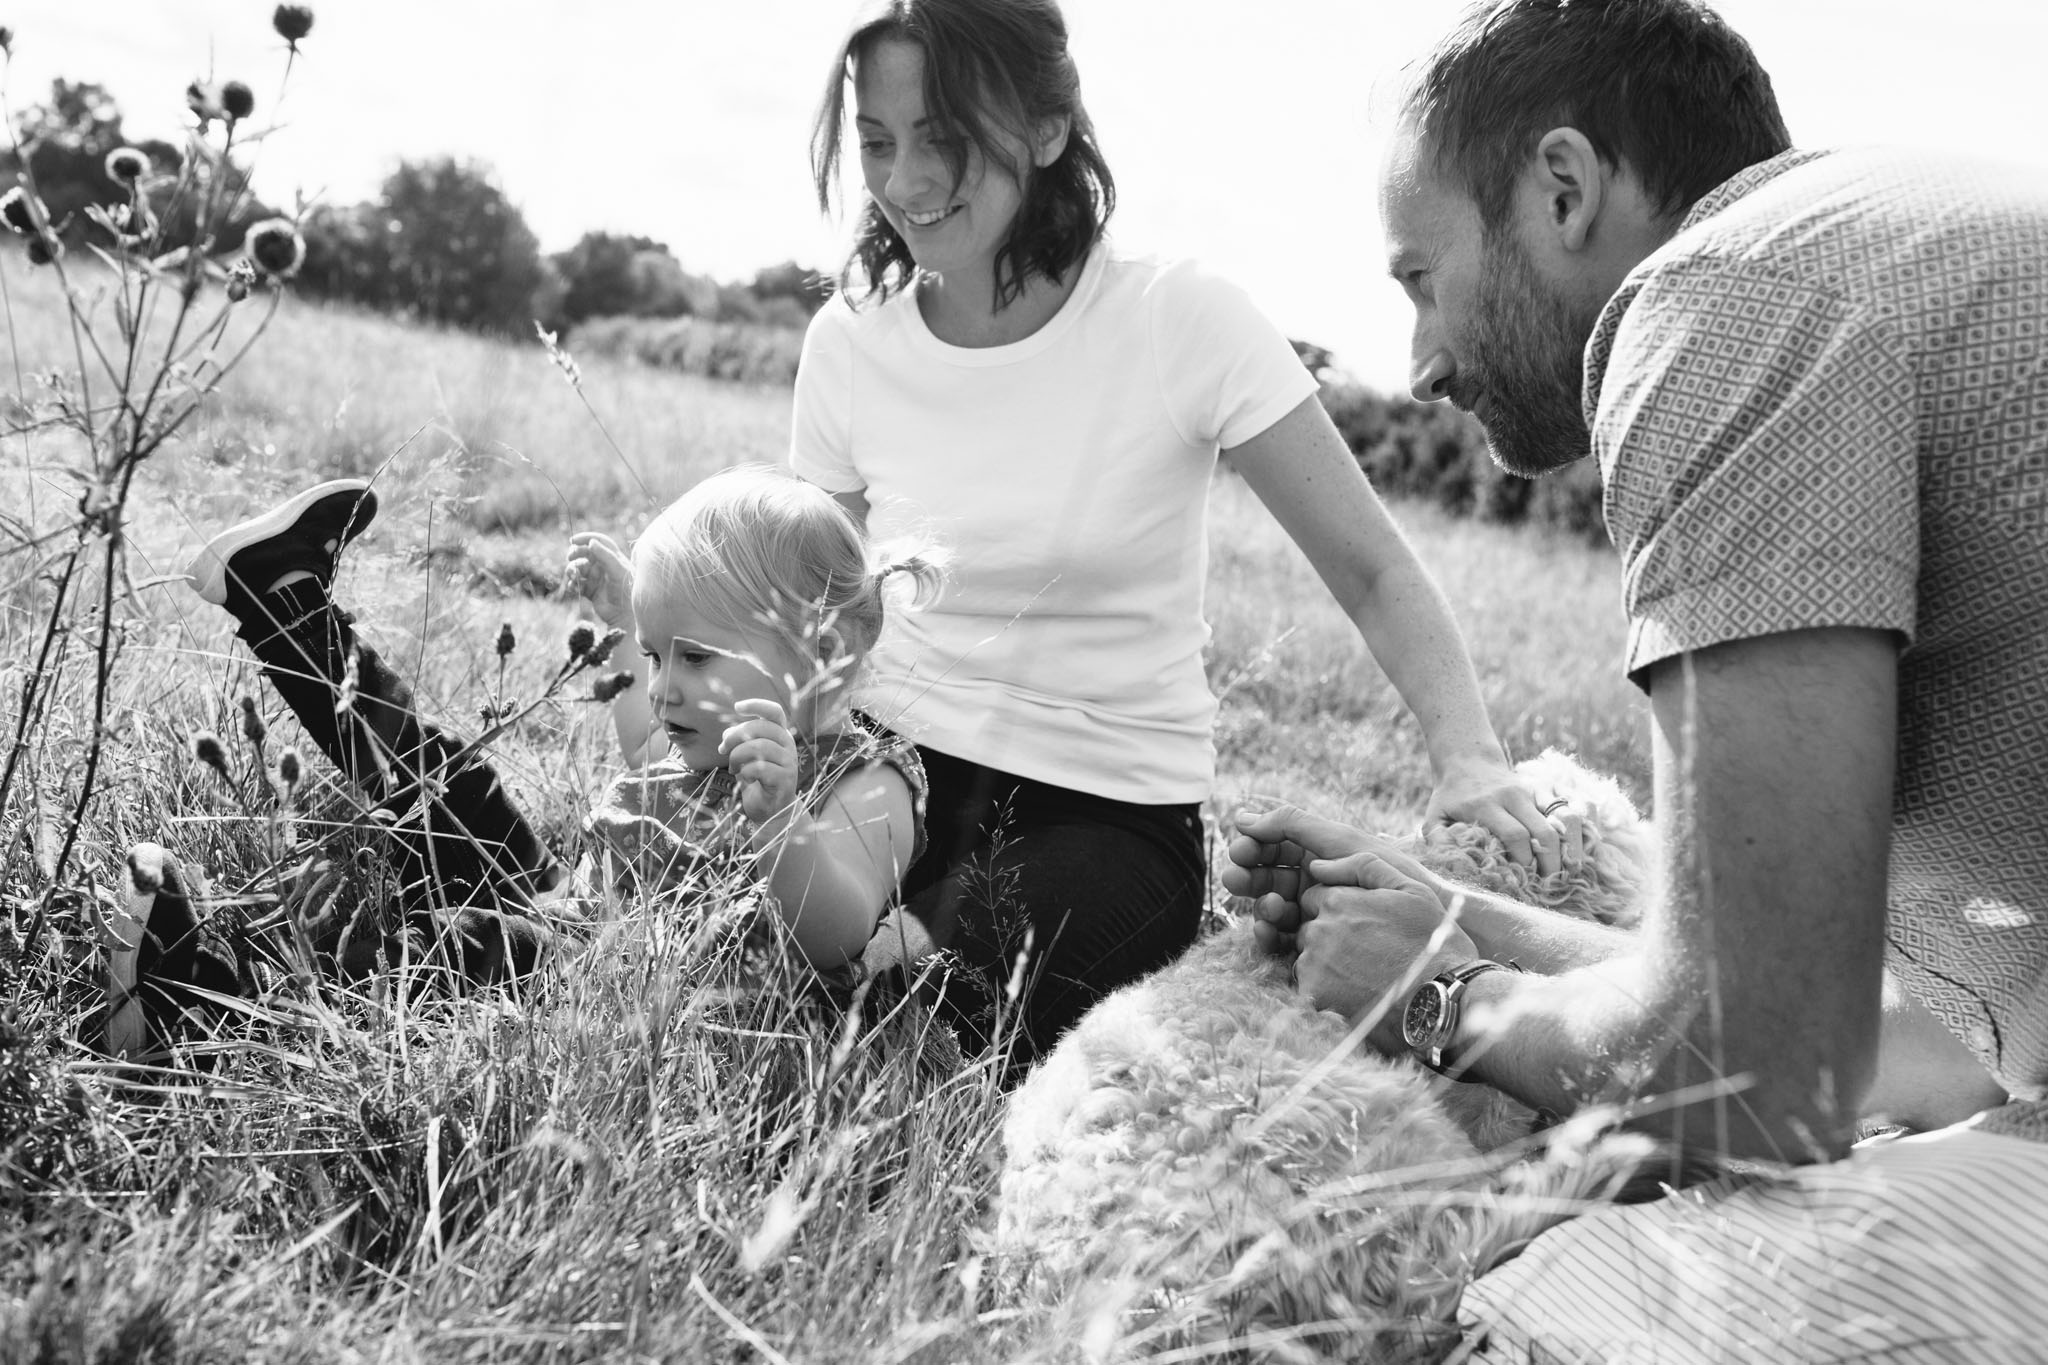 documentary black and white family portrait photographer, horsham, crawley, sussex